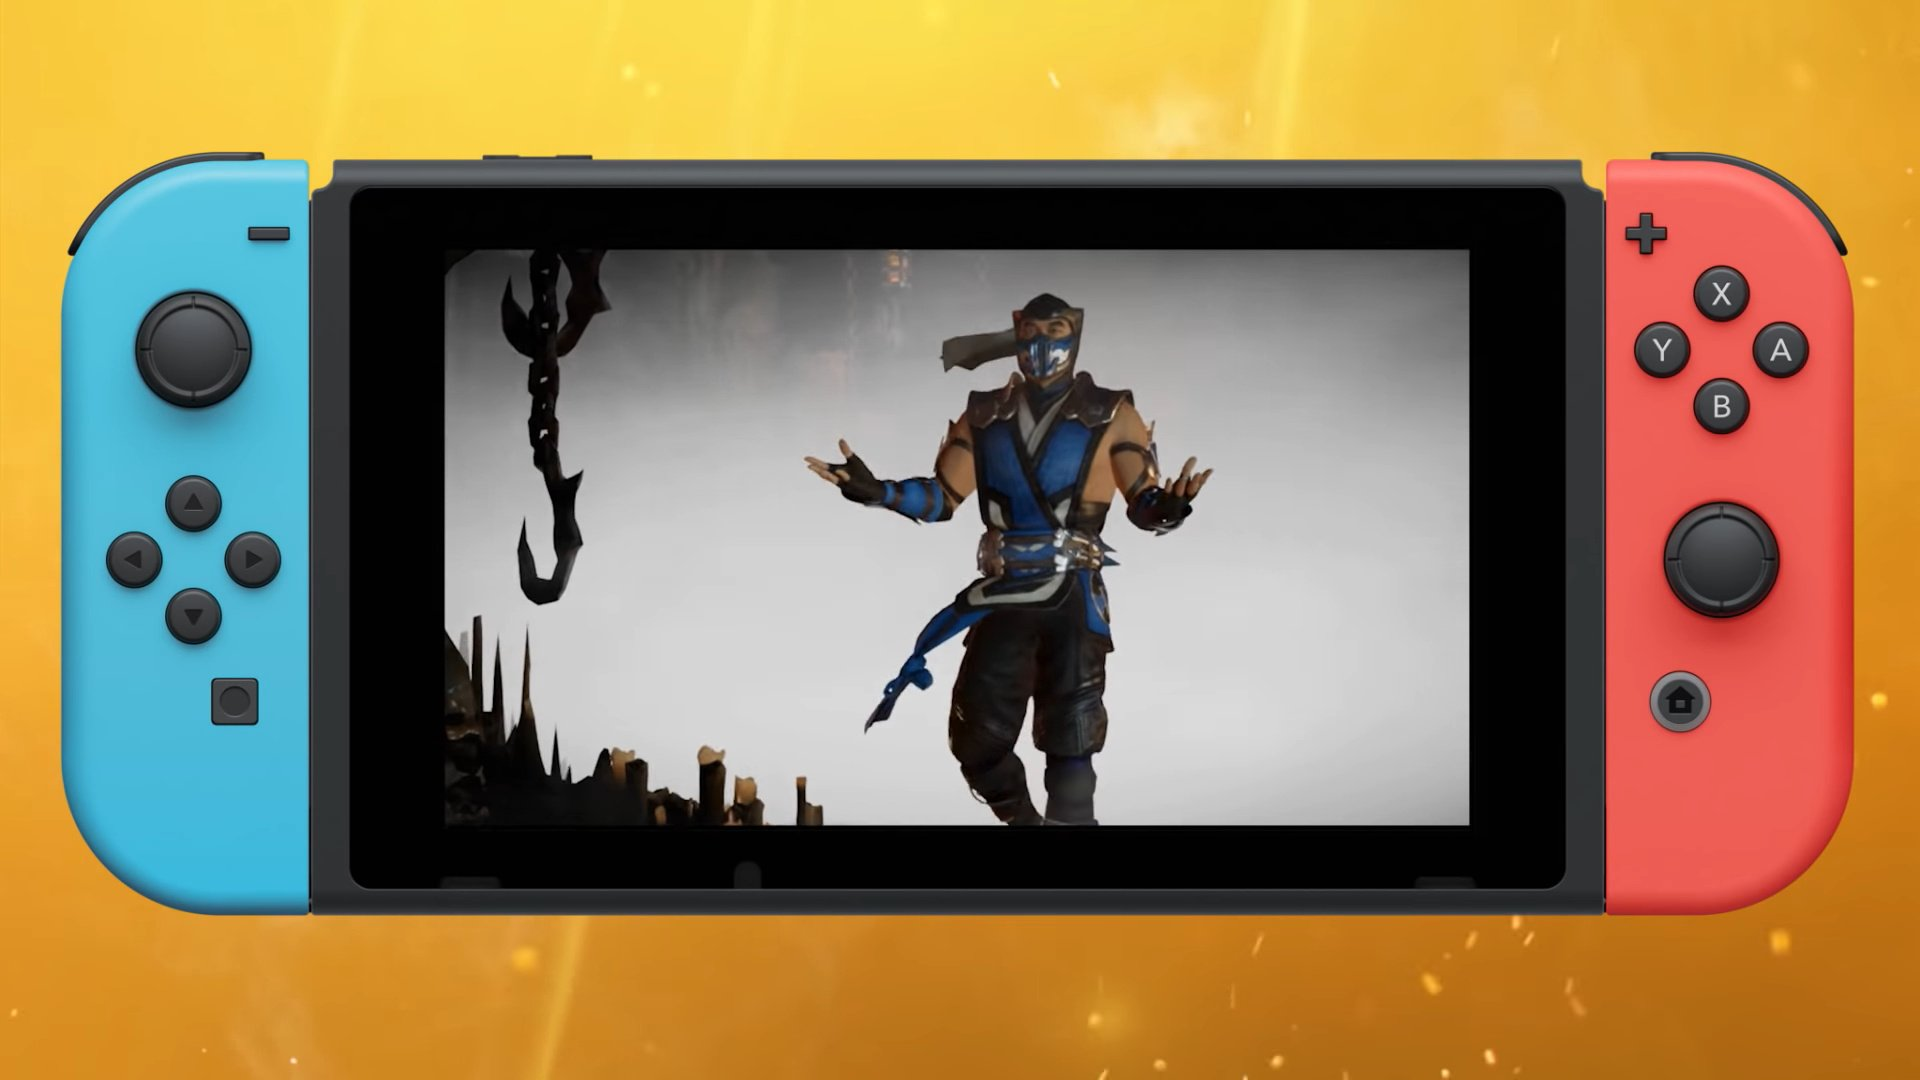 Here's The Mortal Kombat 11 Gameplay Reveal For Nintendo Switch